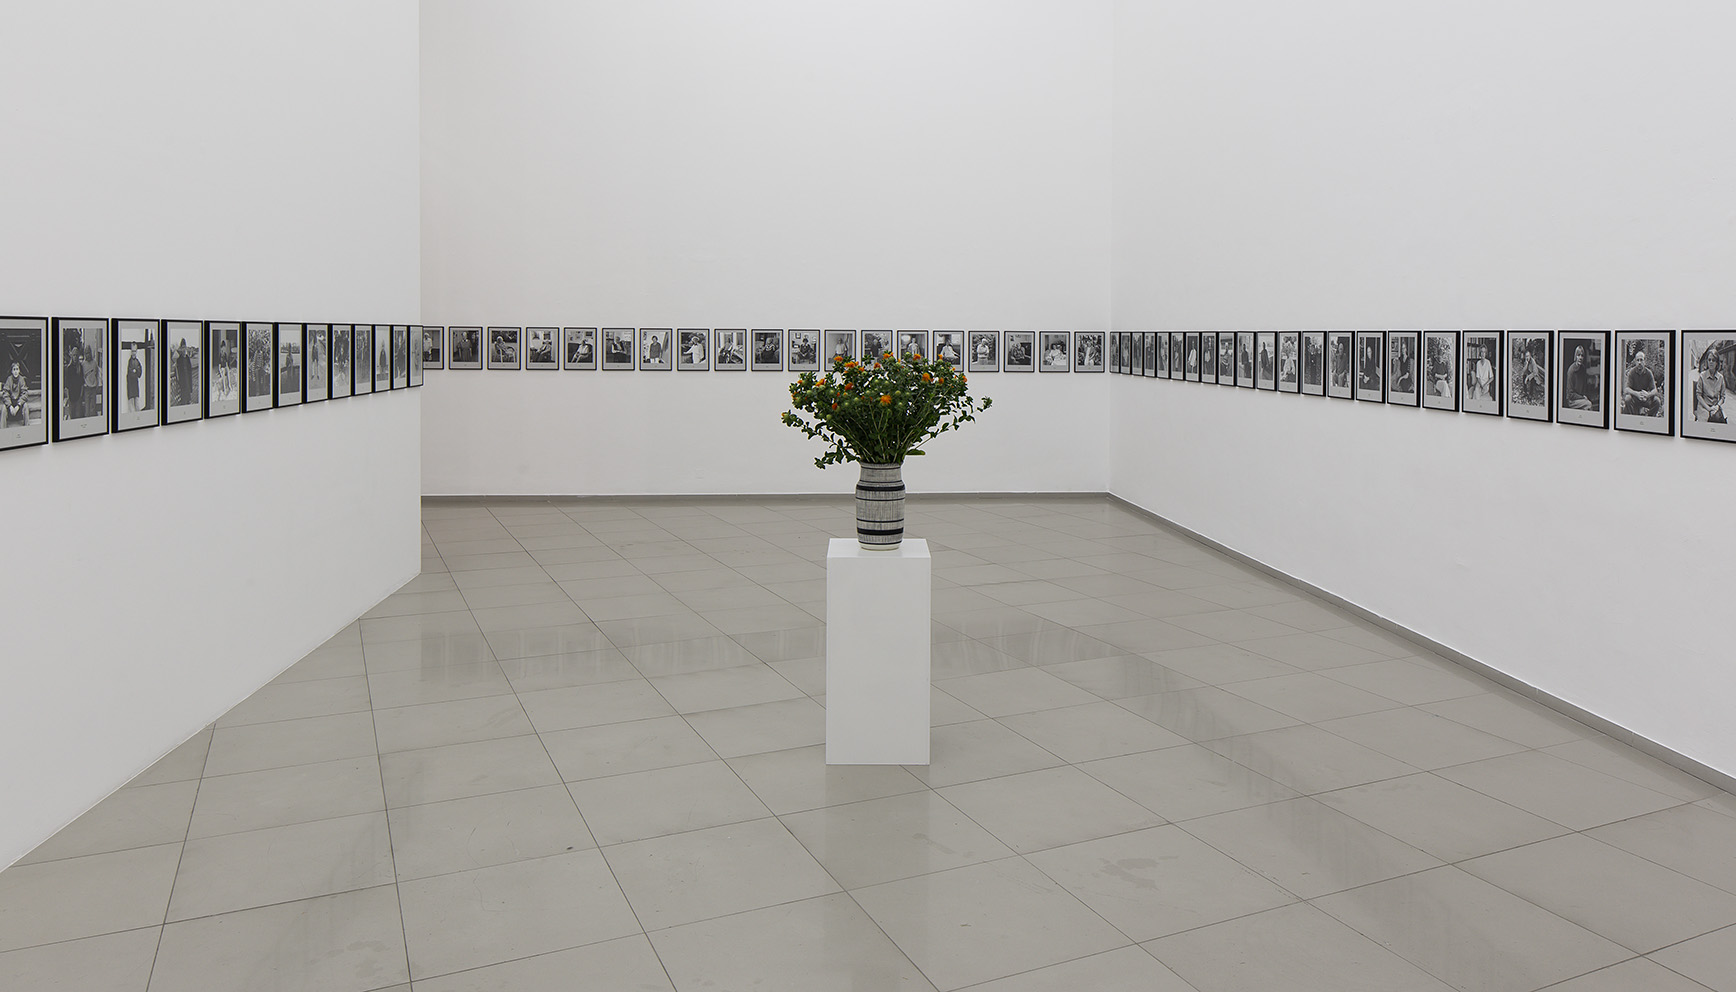 Hans-Peter Feldmann, 100 years, 2001. As installed in Tel Aviv, 2016. Courtesy of Hans Peter Feldmann, 303 Gallery, and Igal Ahouvi Art Collection.